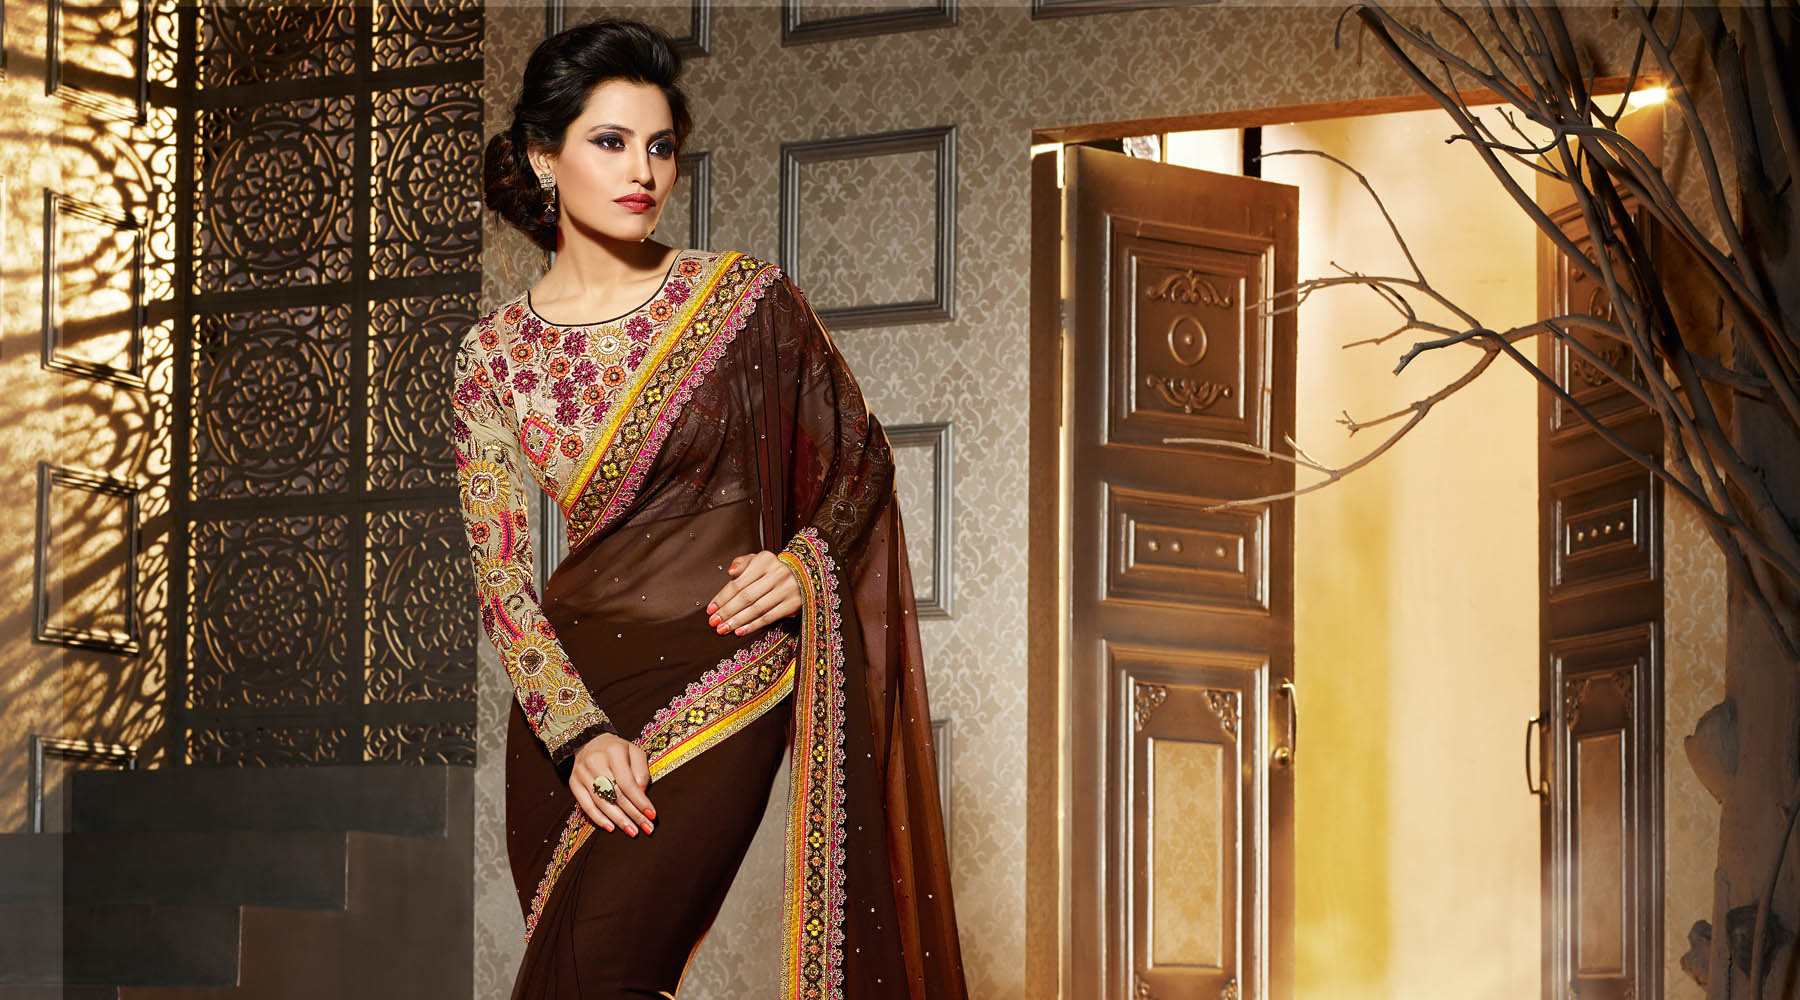 Sarees Online Shopping - Buy Latest Sarees, Designer Sarees, Party Wear Sarees, Wedding Sarees, Bridal Sarees, Half Sarees, Lehenga Sarees, Fancy Sarees and All Type of Indian Saree Blouse at Best Price on Variation.